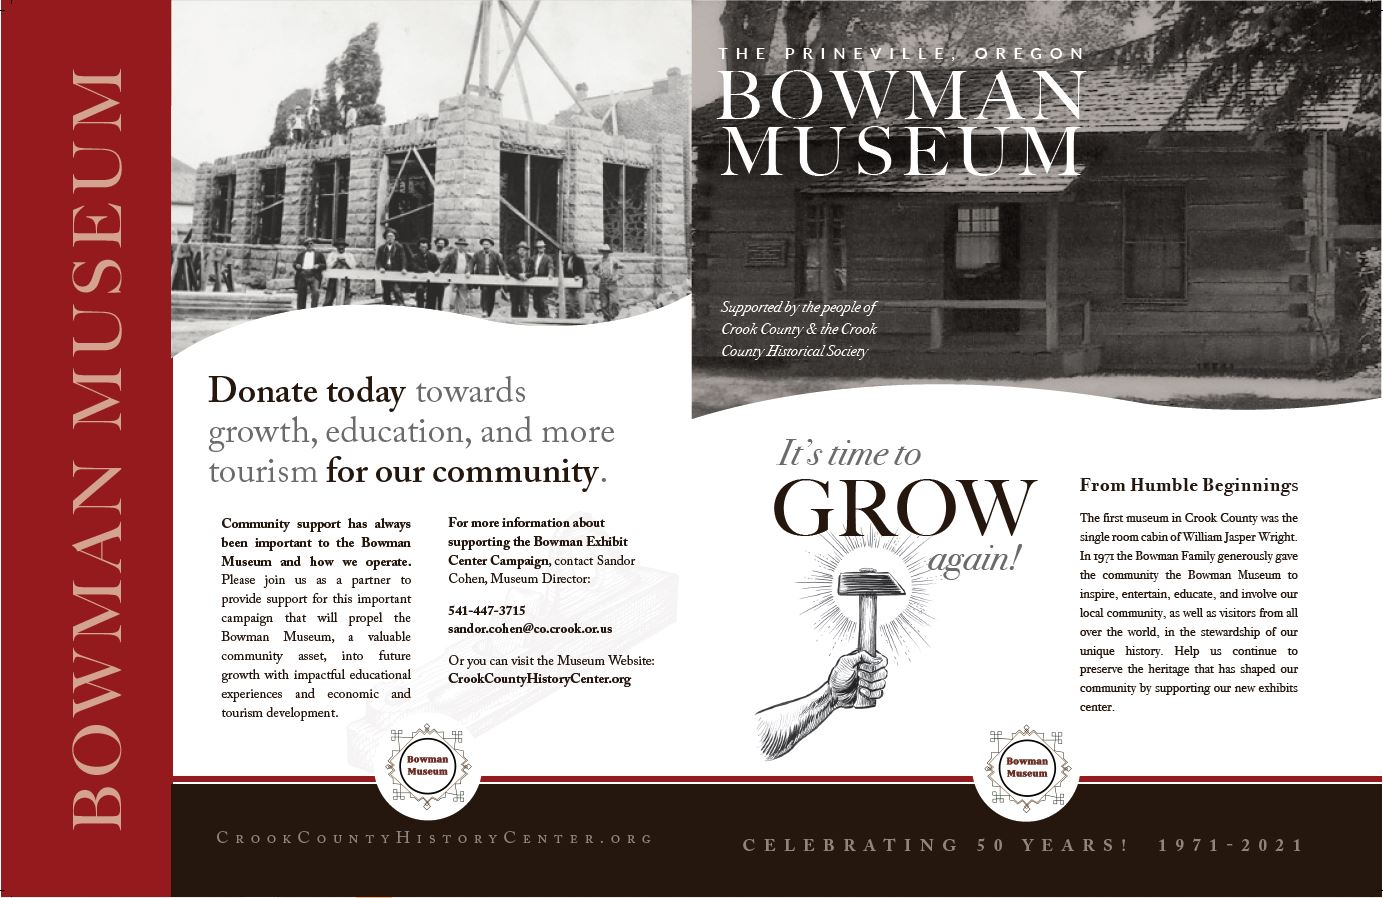 Donate today towards growth, education and local history.